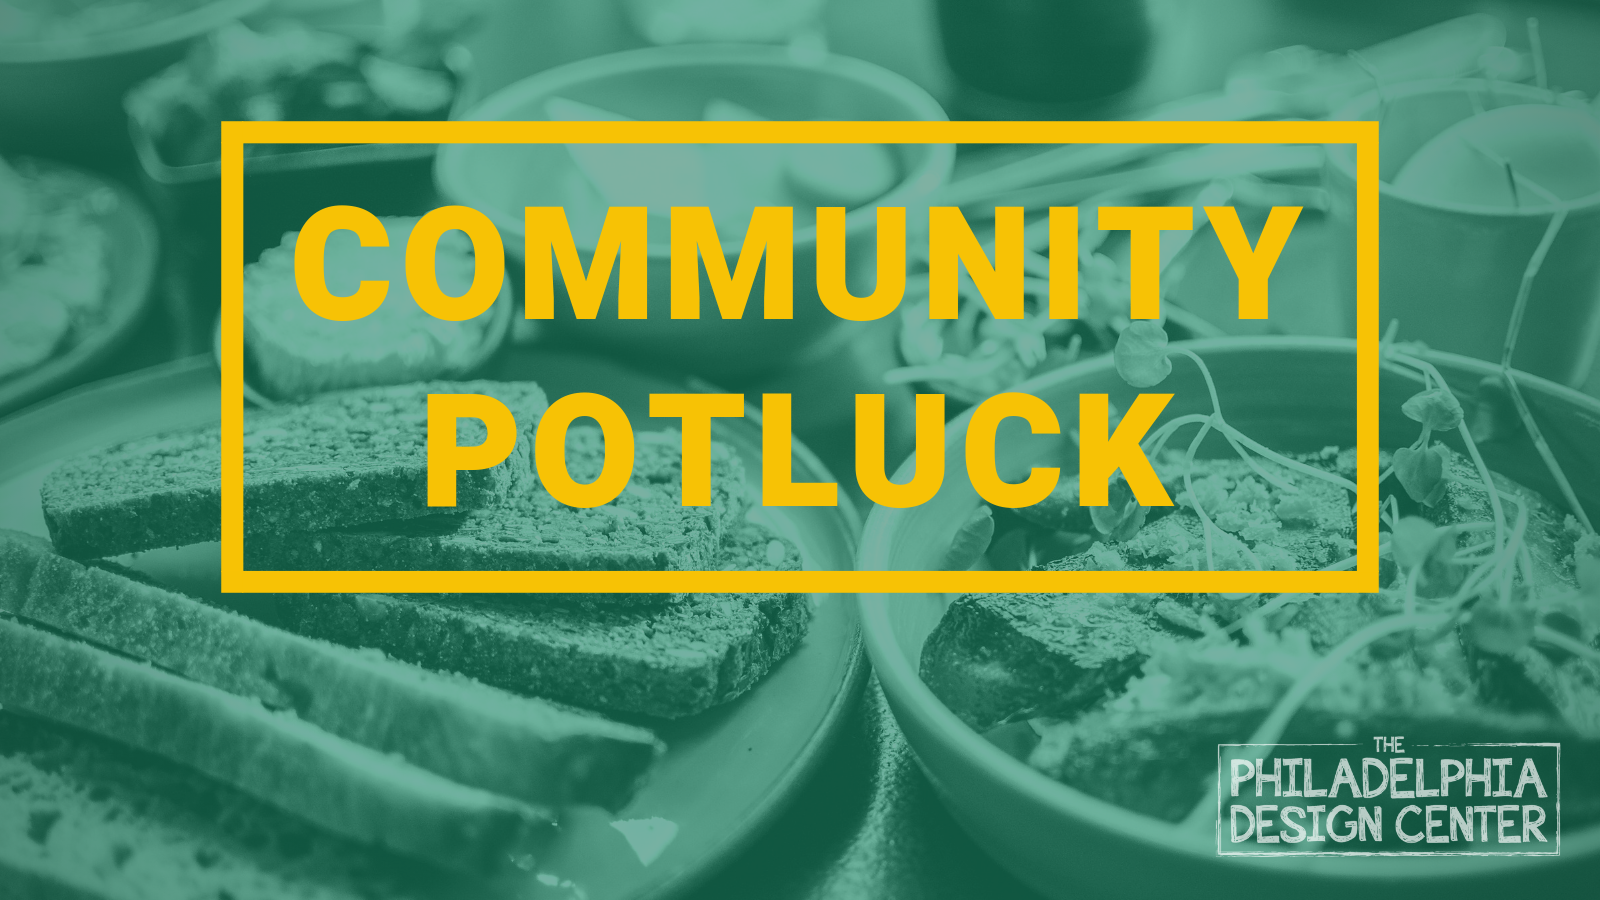 Community-potluck-image.png